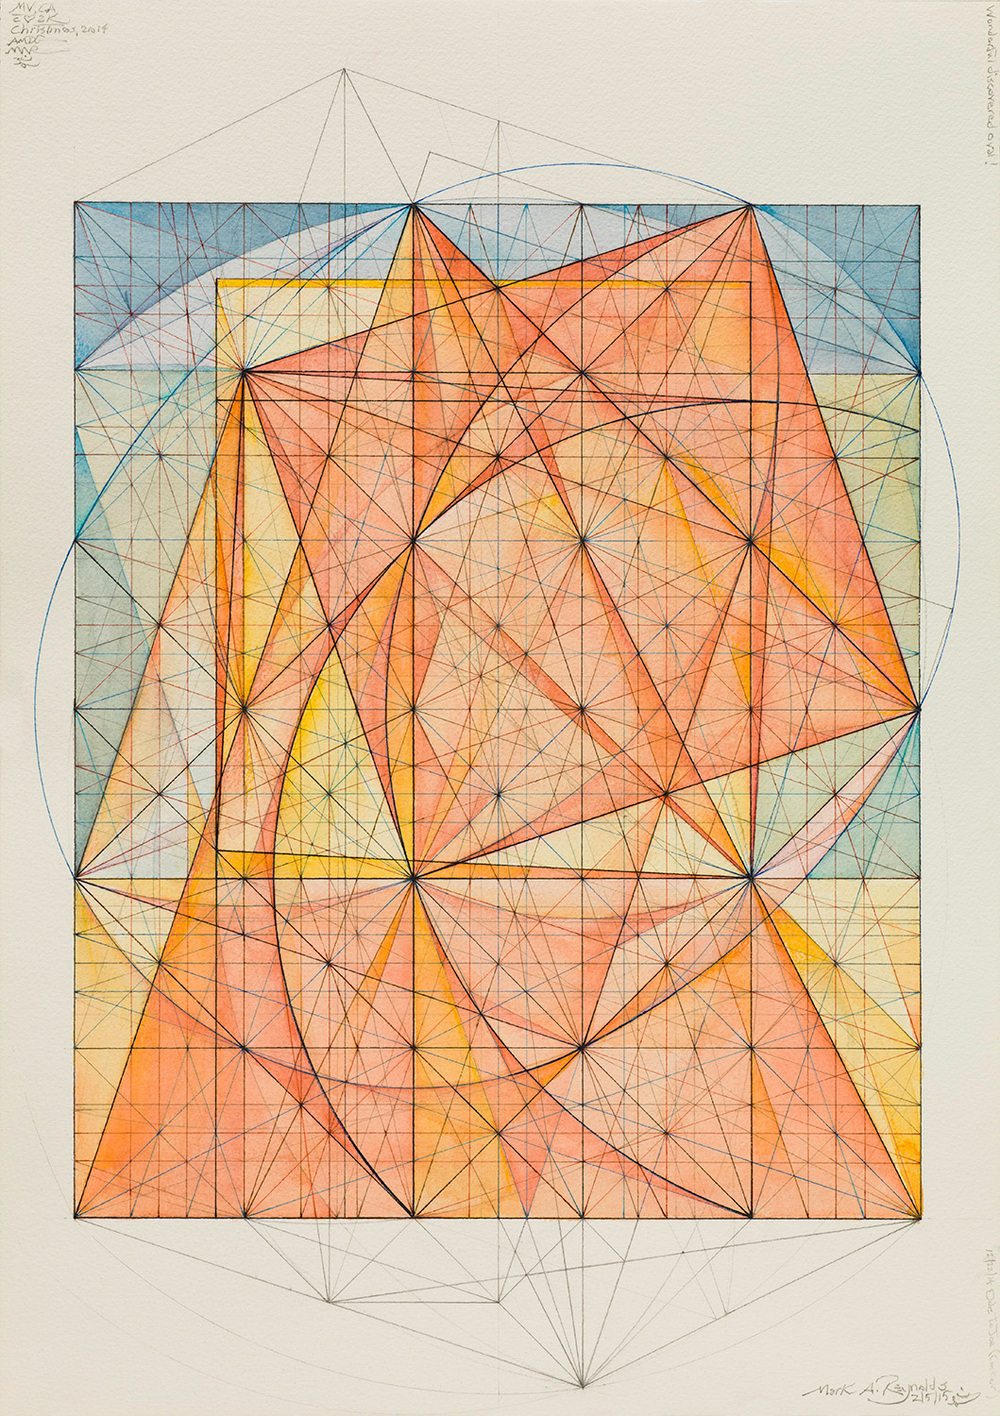 Minor Third Series: Gravitational Shadows, 5.11, 2011   14.5 in. x 12.75 in. (Sheet size: 16.625 in. x 14 in.) Graphite, colored pencils and ink on cotton paper